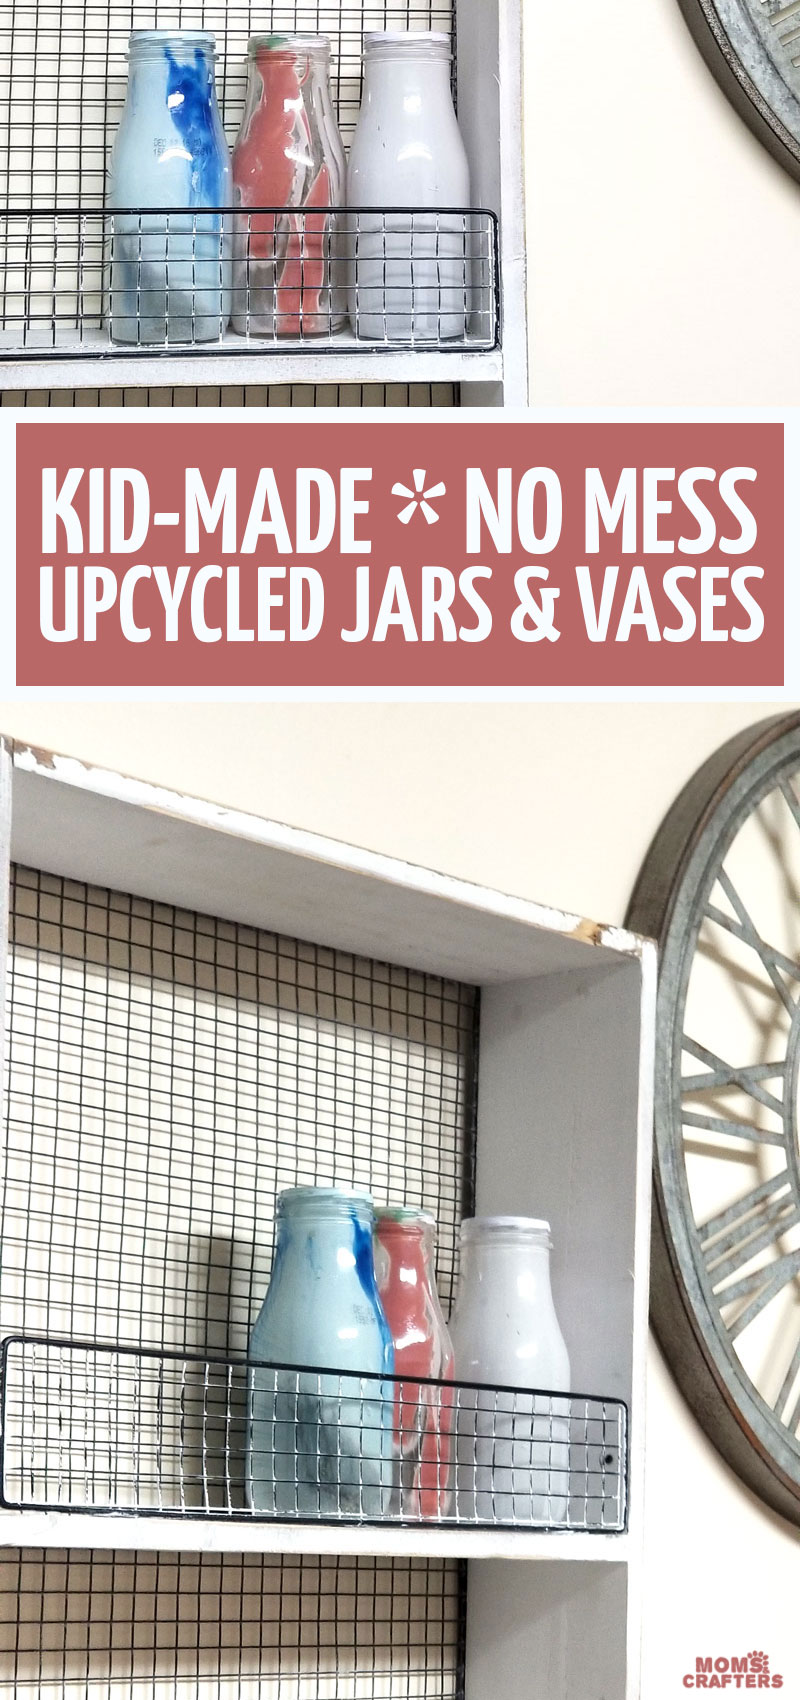 Looking for Frappuccino bottle crafts? These beautiful pour painted upcycled vases are super easy to make - and are a great kid-made gifts for toddlers, preschoolers, teens, tweens and grown ups to make for moms for mothers day or any occasion! Reuse Starbucks bottles as milk bottle displays.